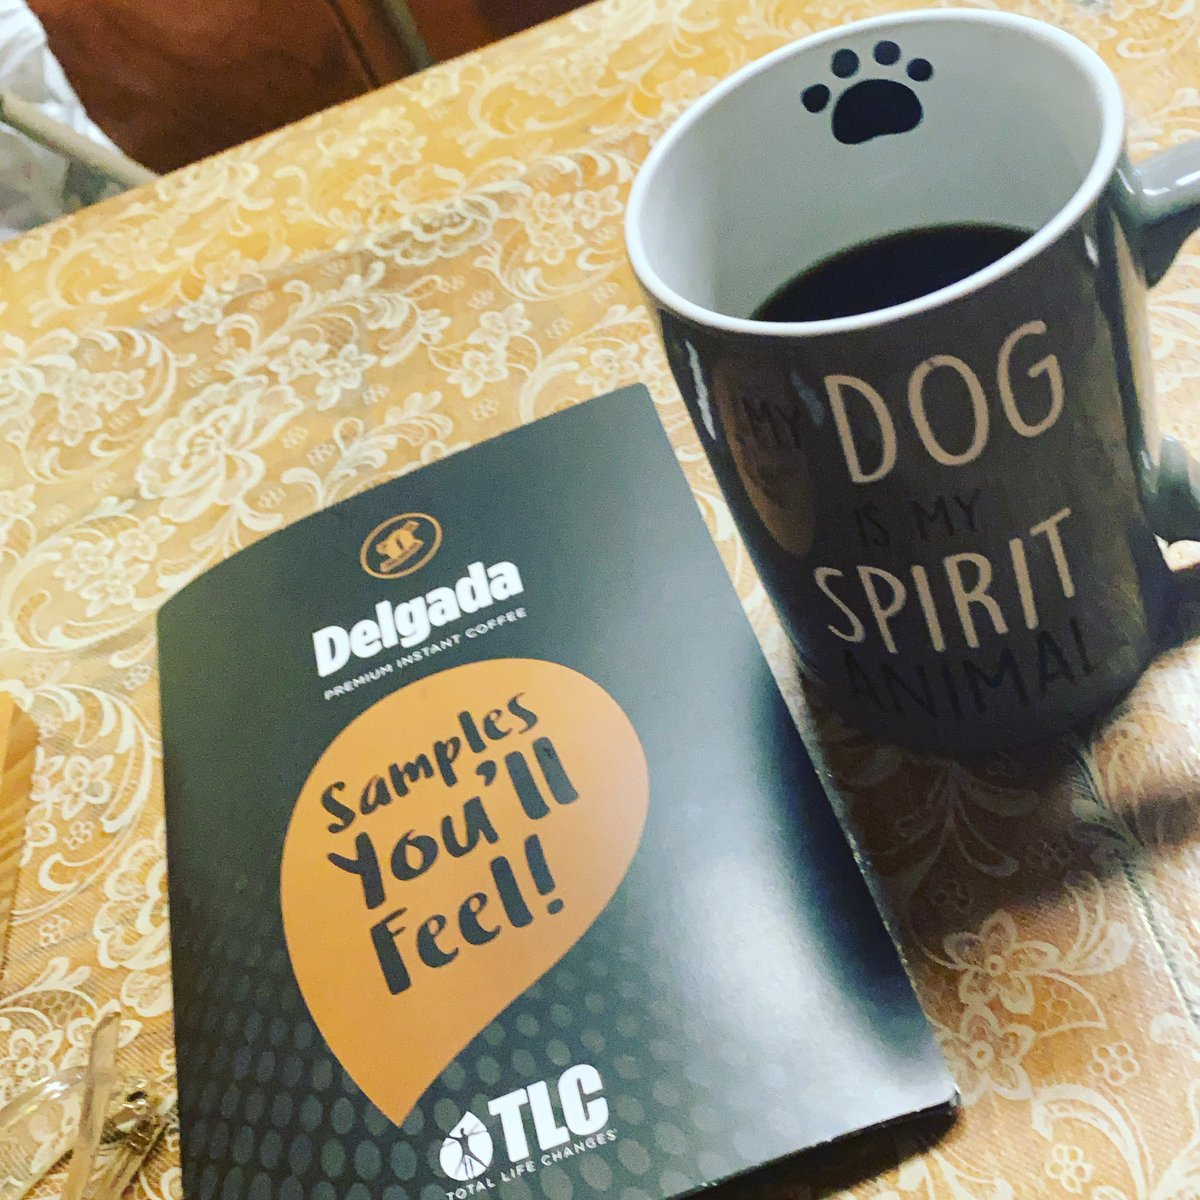 Enjoying my morning coffee.  If you are a coffee lover like me and need help curbing appetite and lose weight dm me or check out the link in my bio to order. Limited samples available #linkinbio #goals #30303 #30303challenge #1000families #tranformationcomingsoon #weightlosspic.twitter.com/NuhiBrOhI3